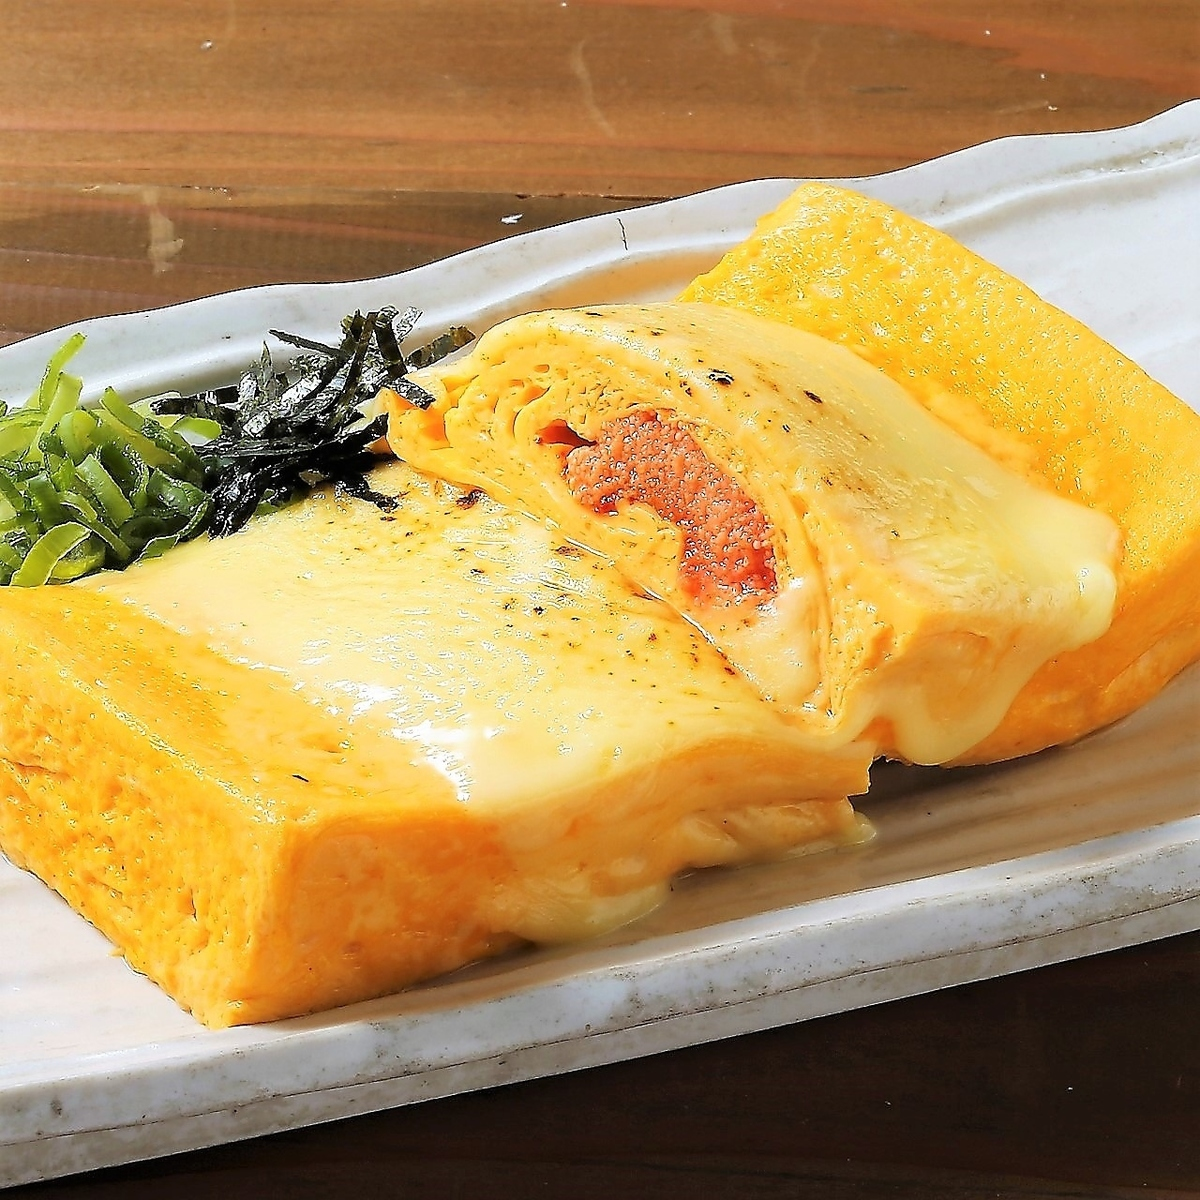 Mentaiko cheese or wrapped egg